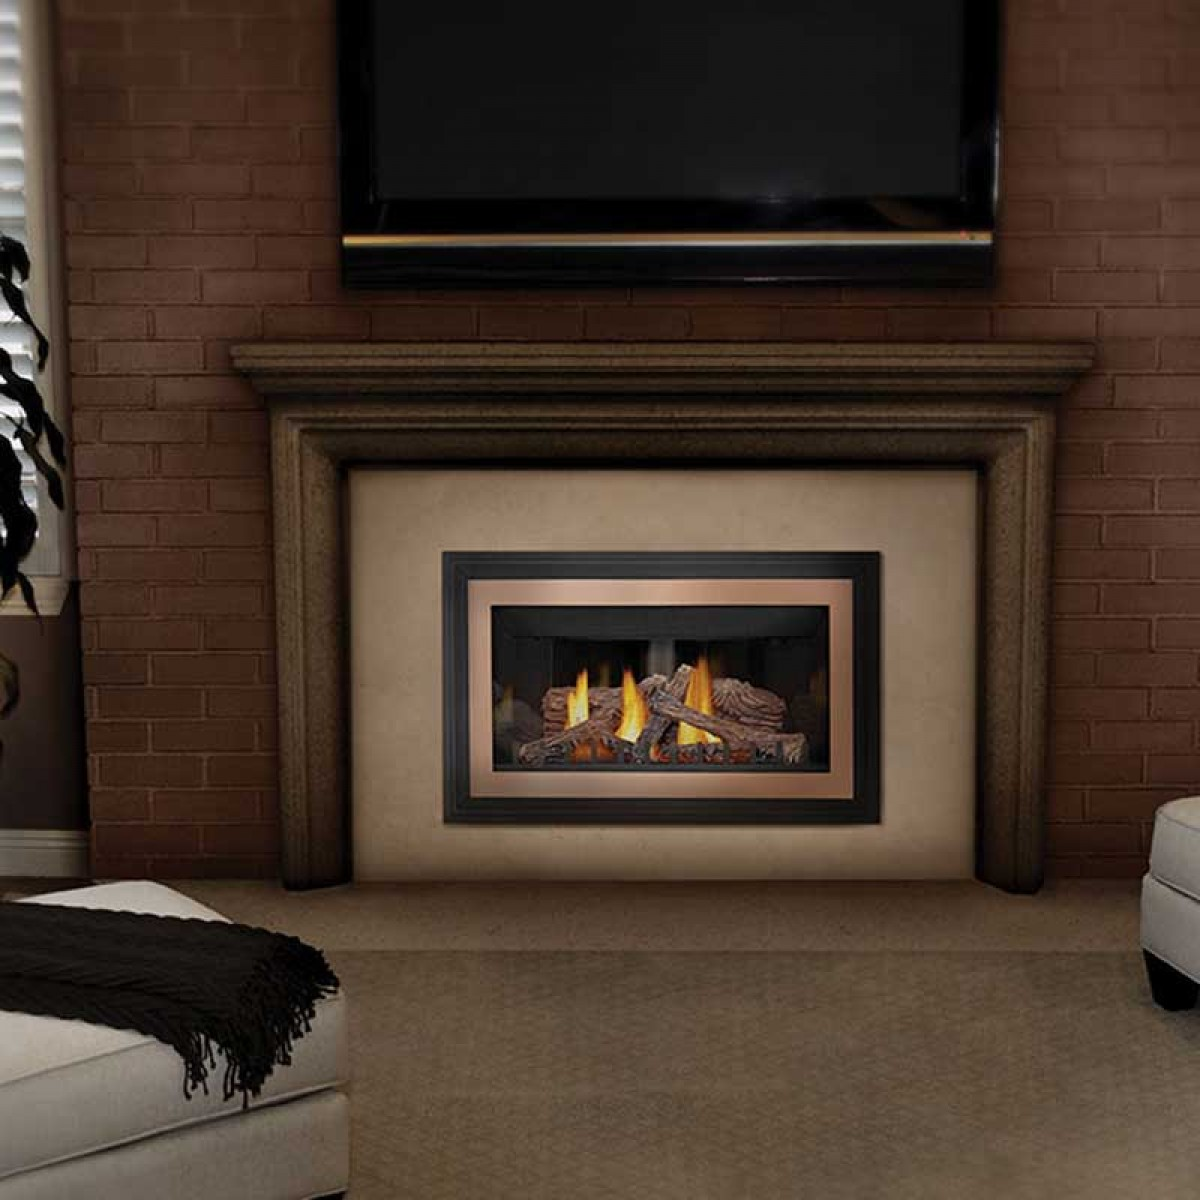 Napoleon GDIZC N Basic Natural gas fireplace insert w